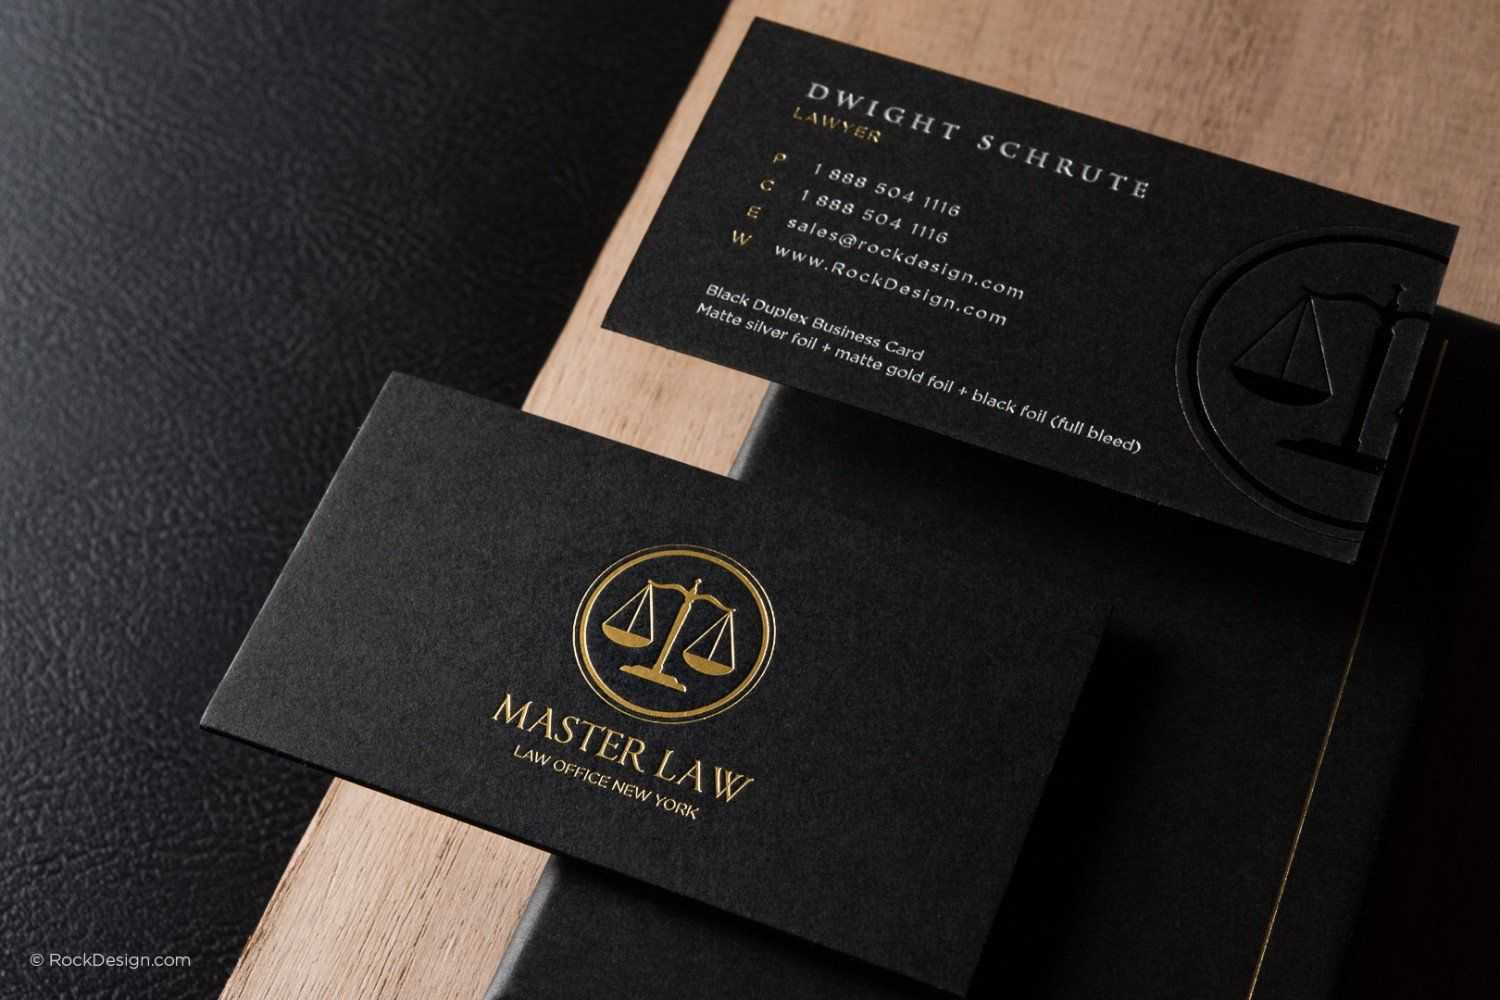 Free Lawyer Business Card Template | Rockdesign | Lawyer intended for Legal Business Cards Templates Free